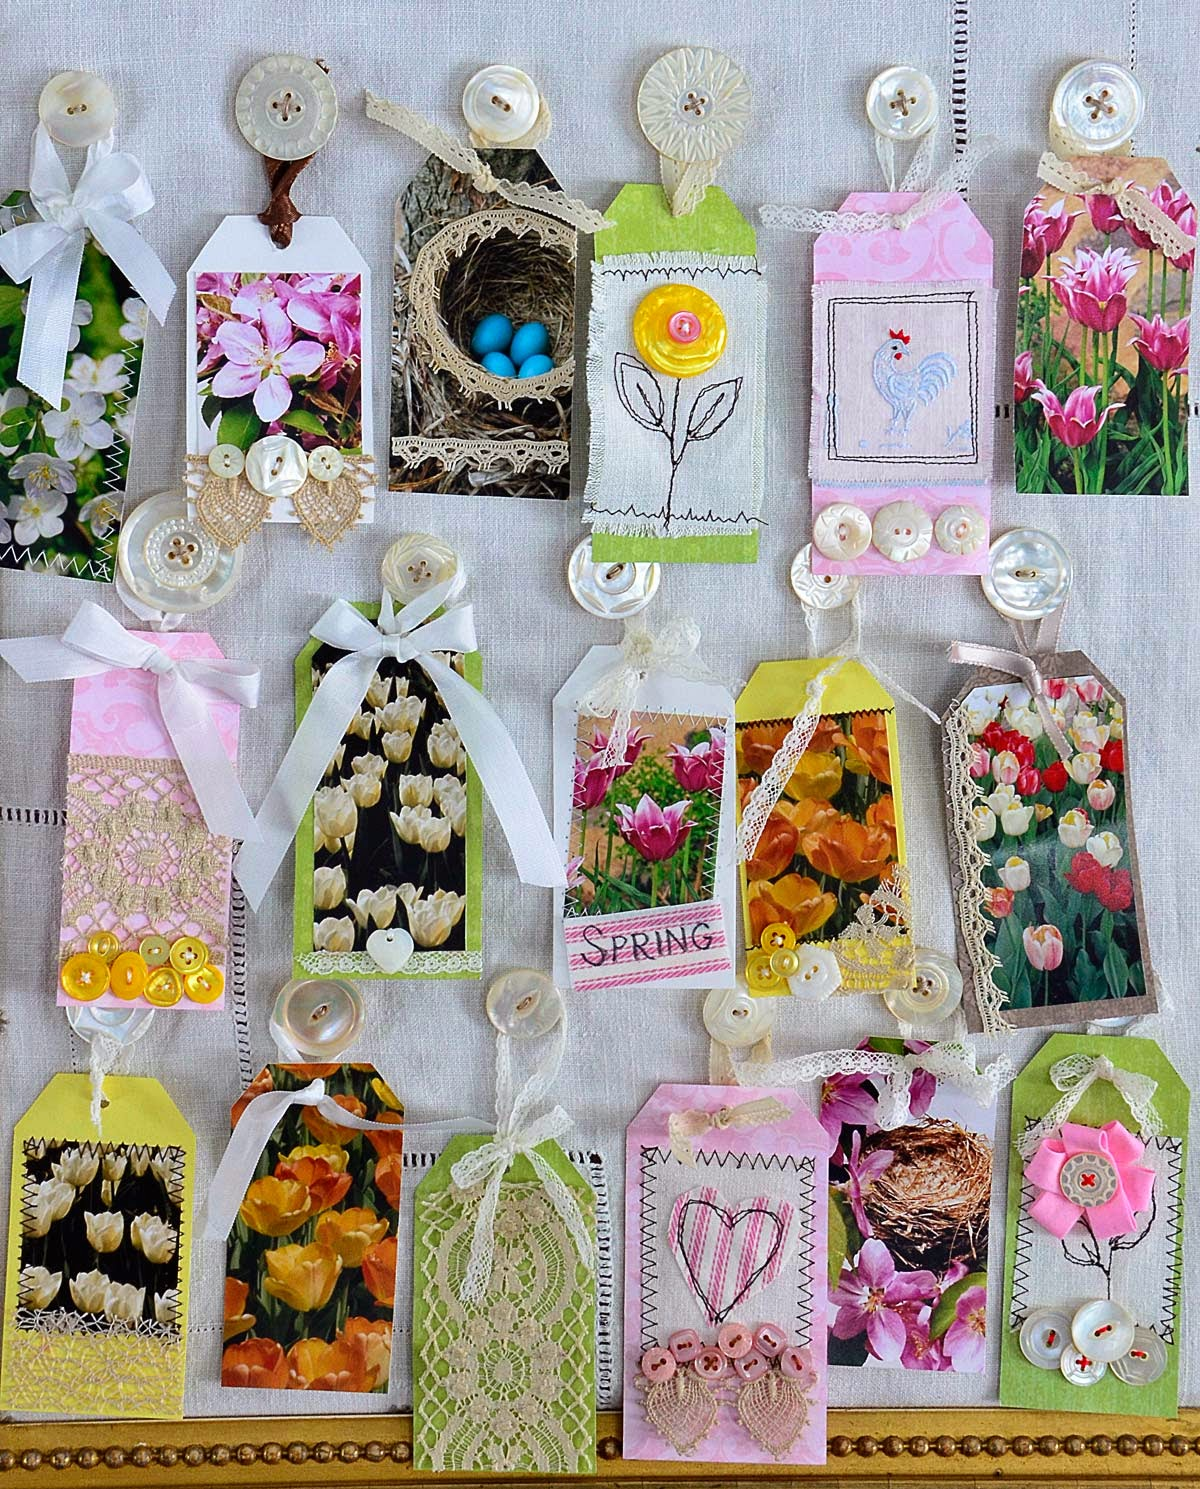 Click below to see a Spring gift tag project!